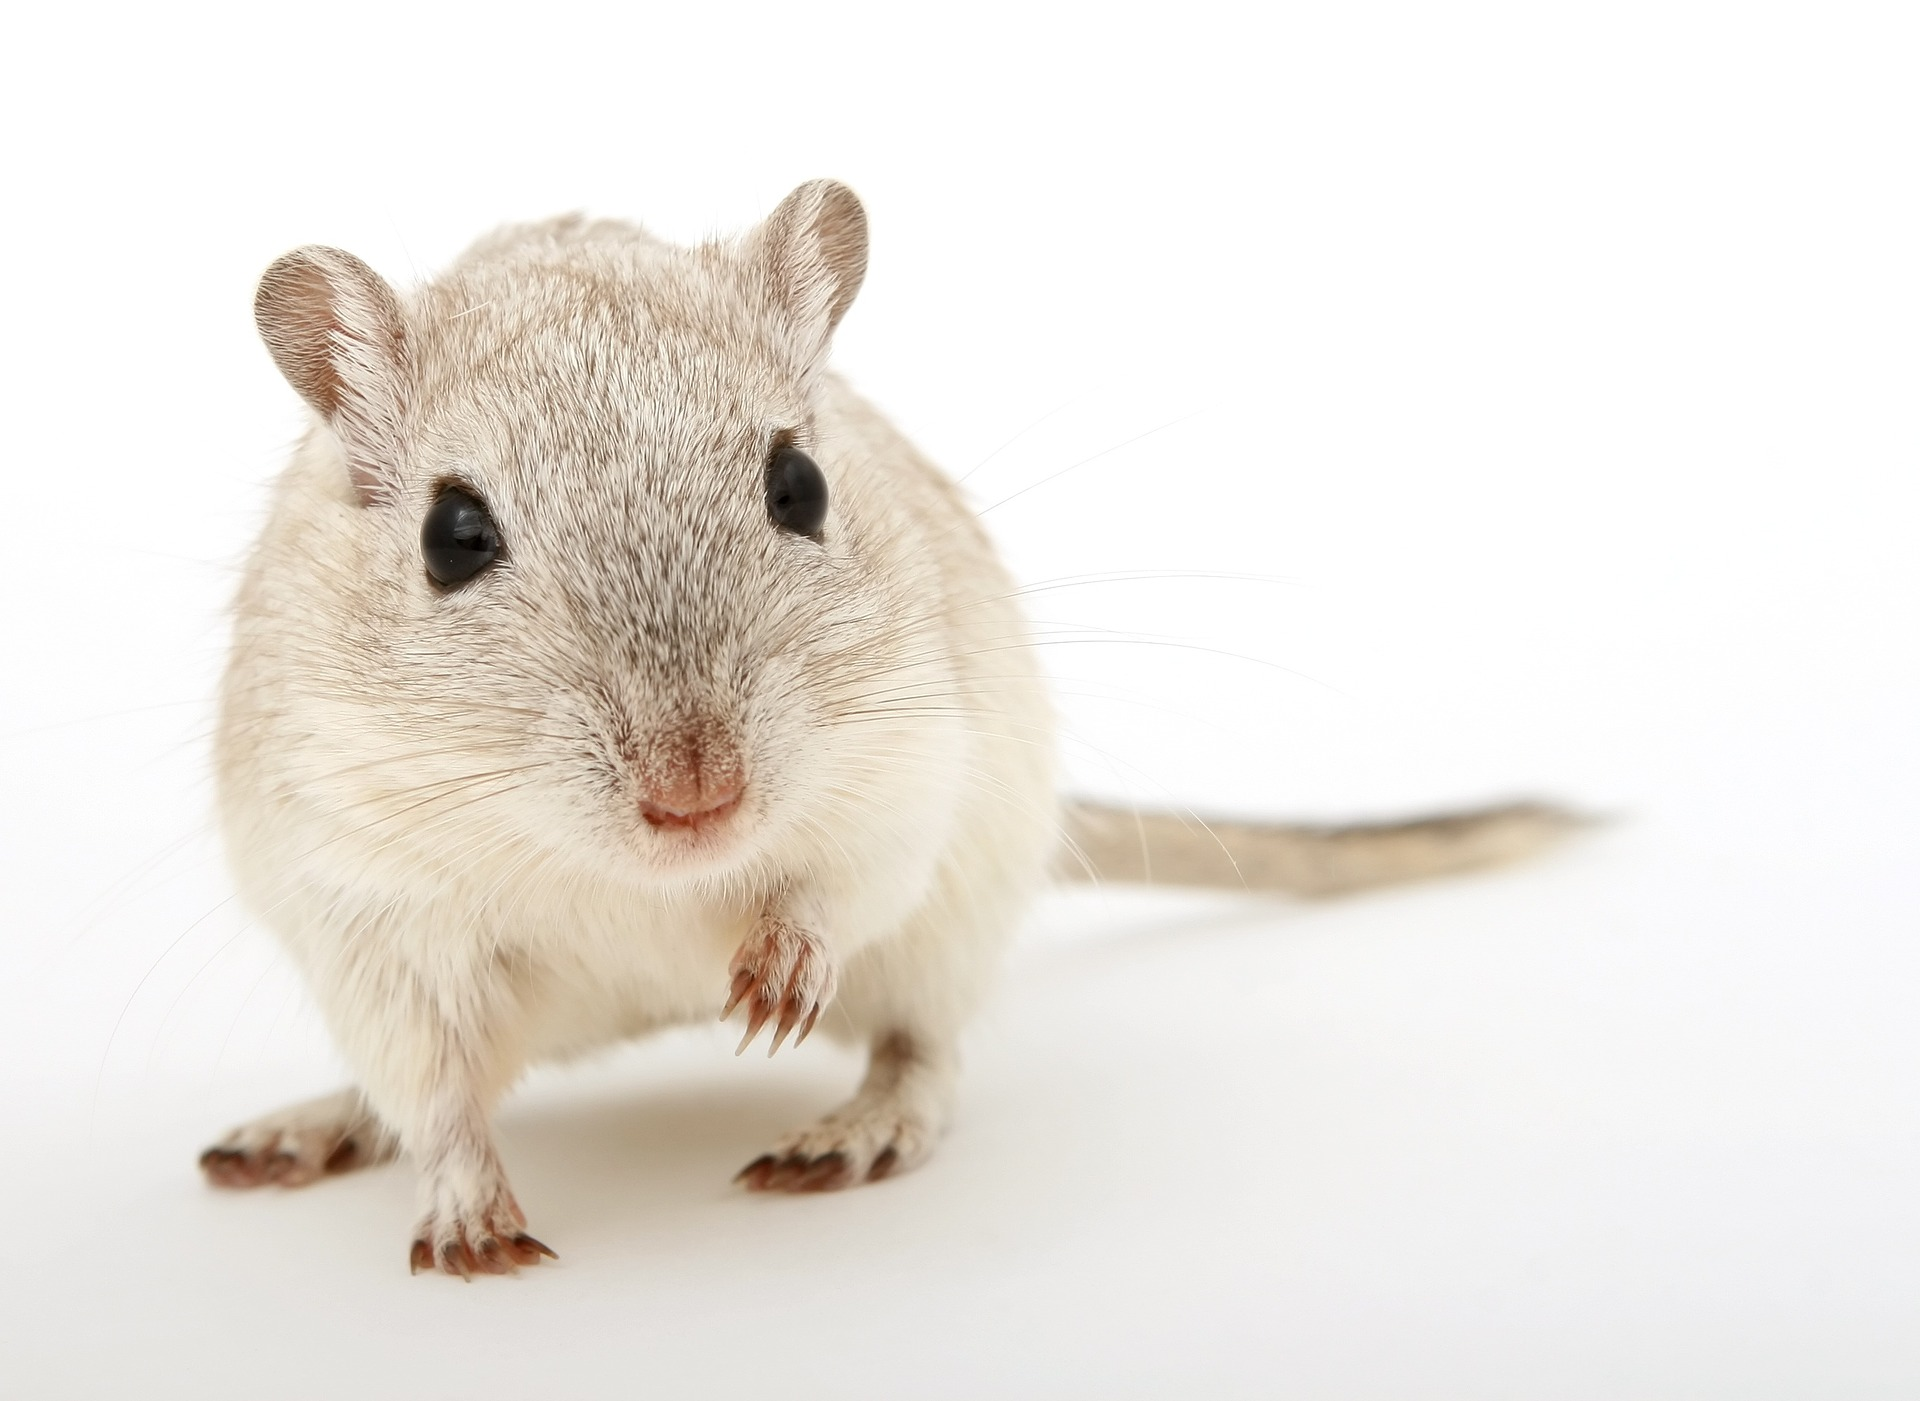 Gray and white mouse looking at camera